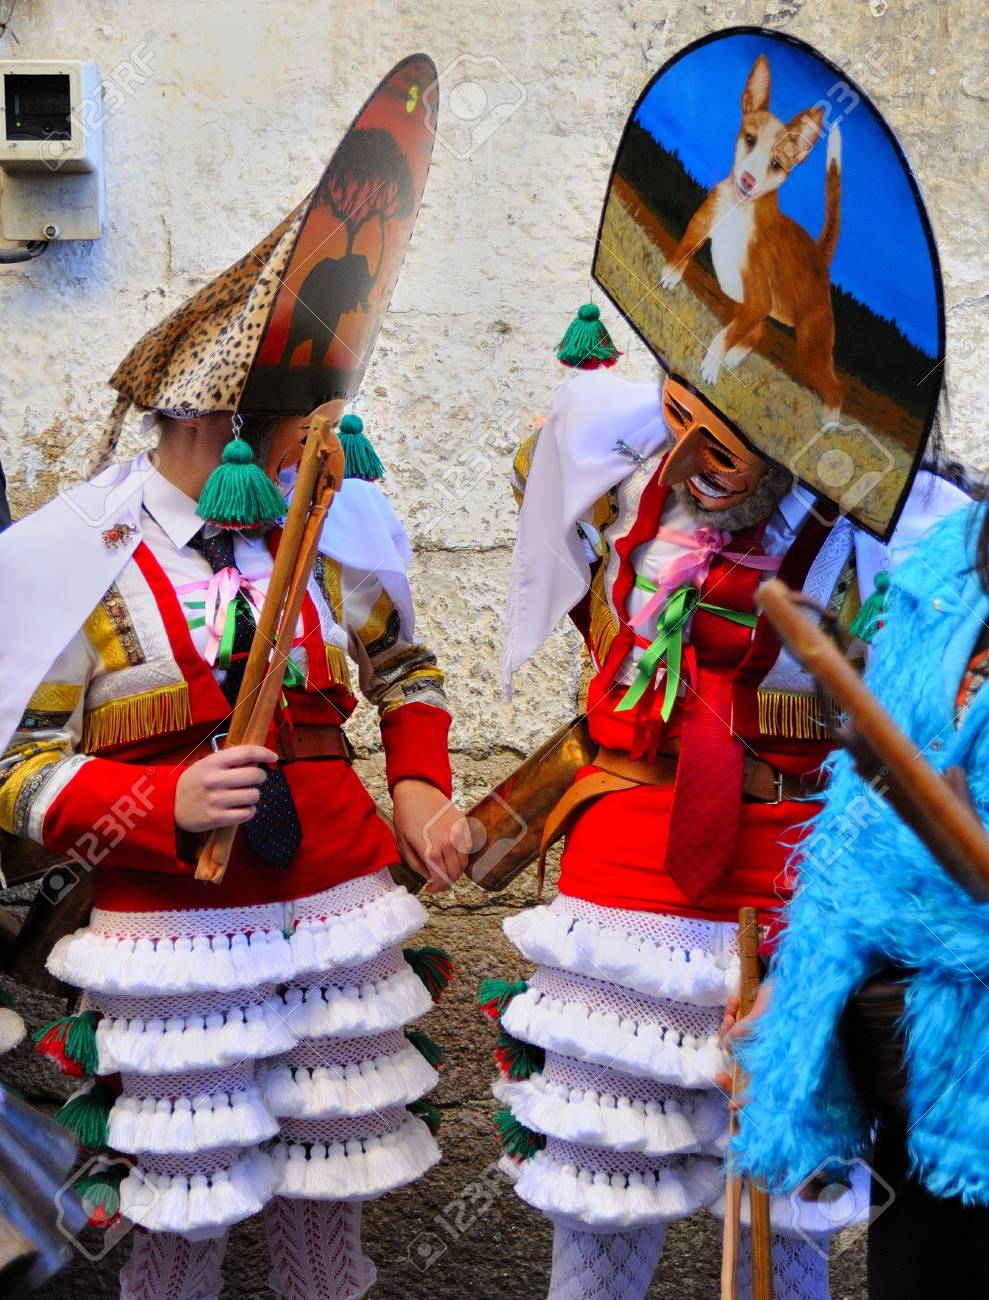 Verin-spain,4-February-2018 Carnival Verin in Galicia Spain one of the most ancient in the world - 102605529